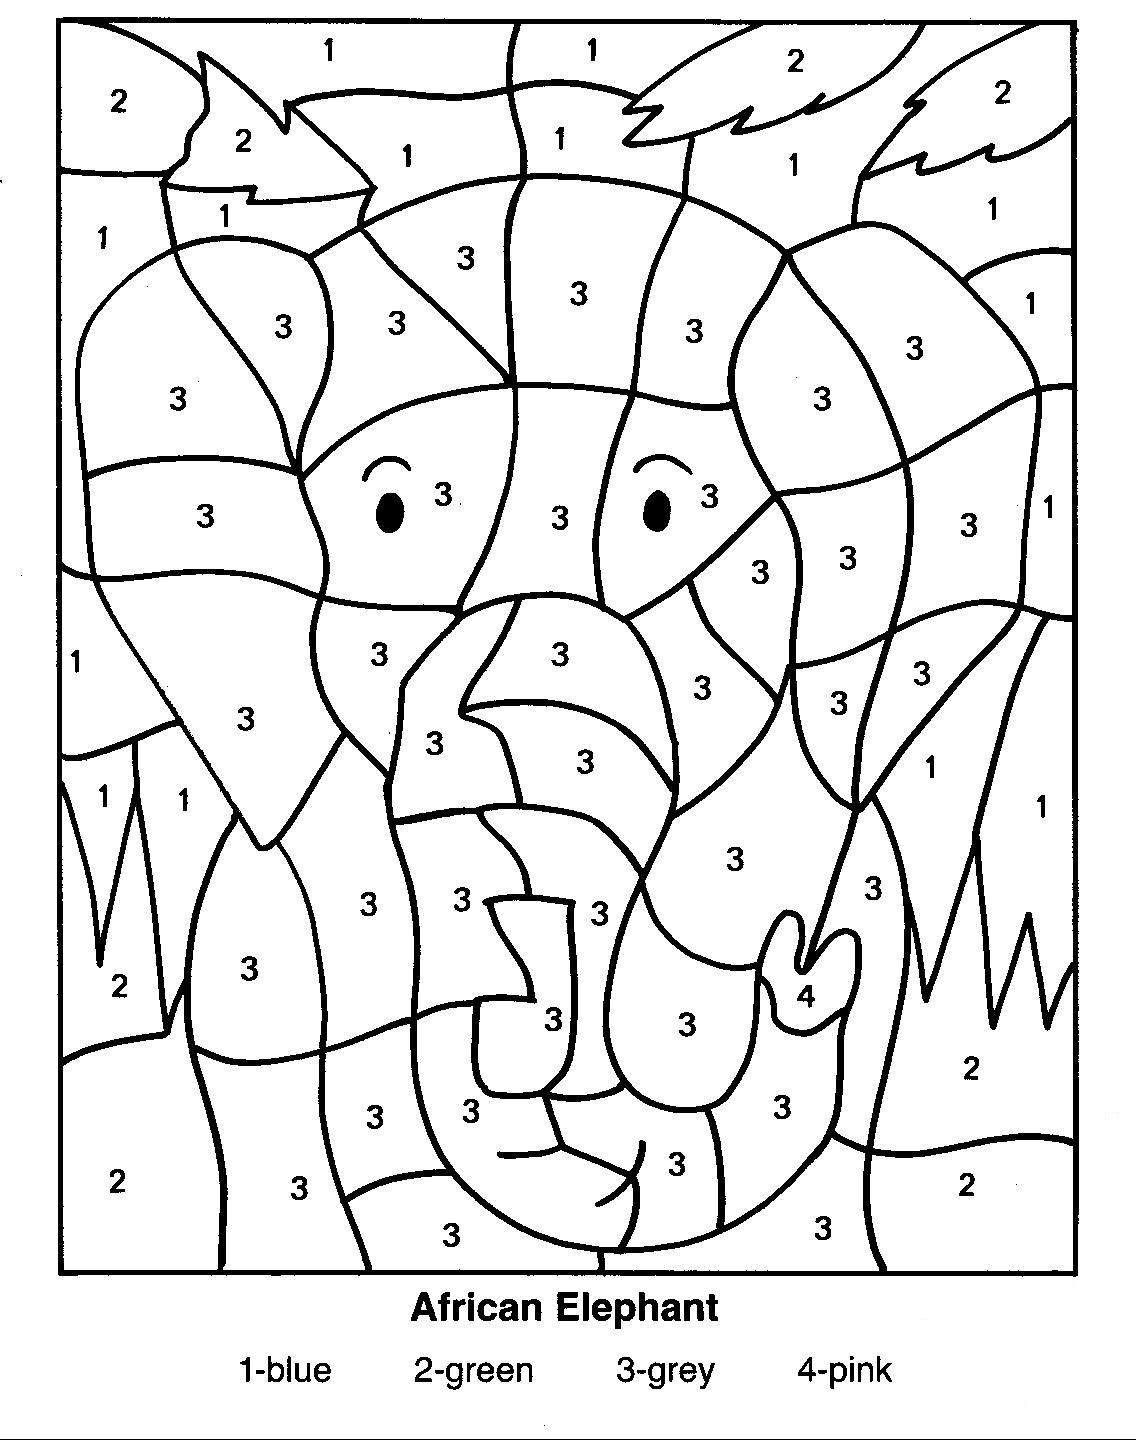 coloring pages of african animals | African Elephant Color By Number ...